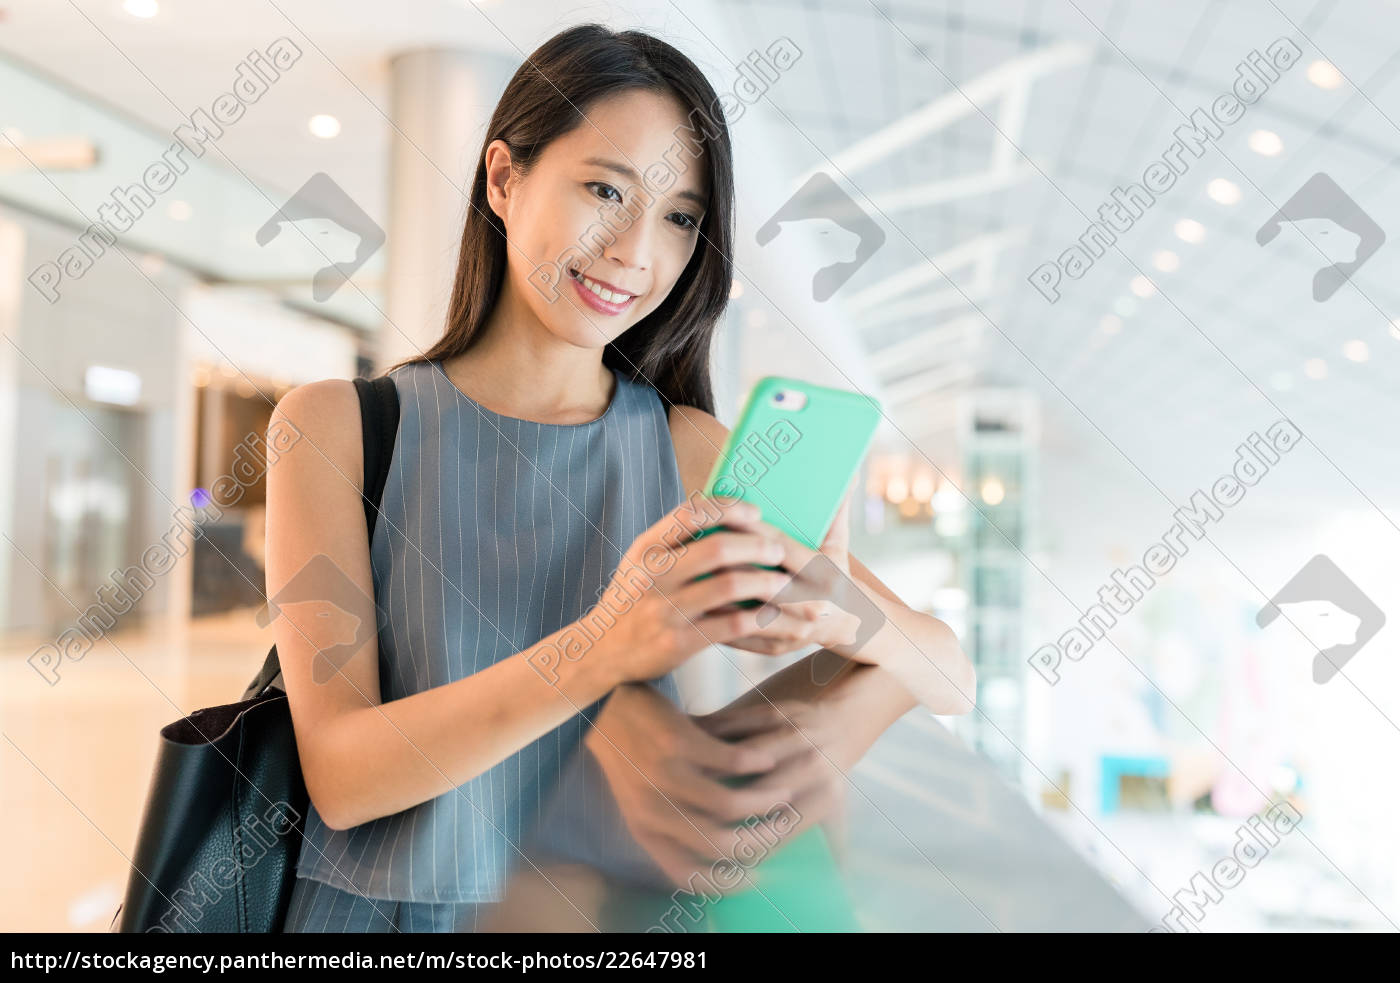 woman, use, of, mobile, phone, in - 22647981